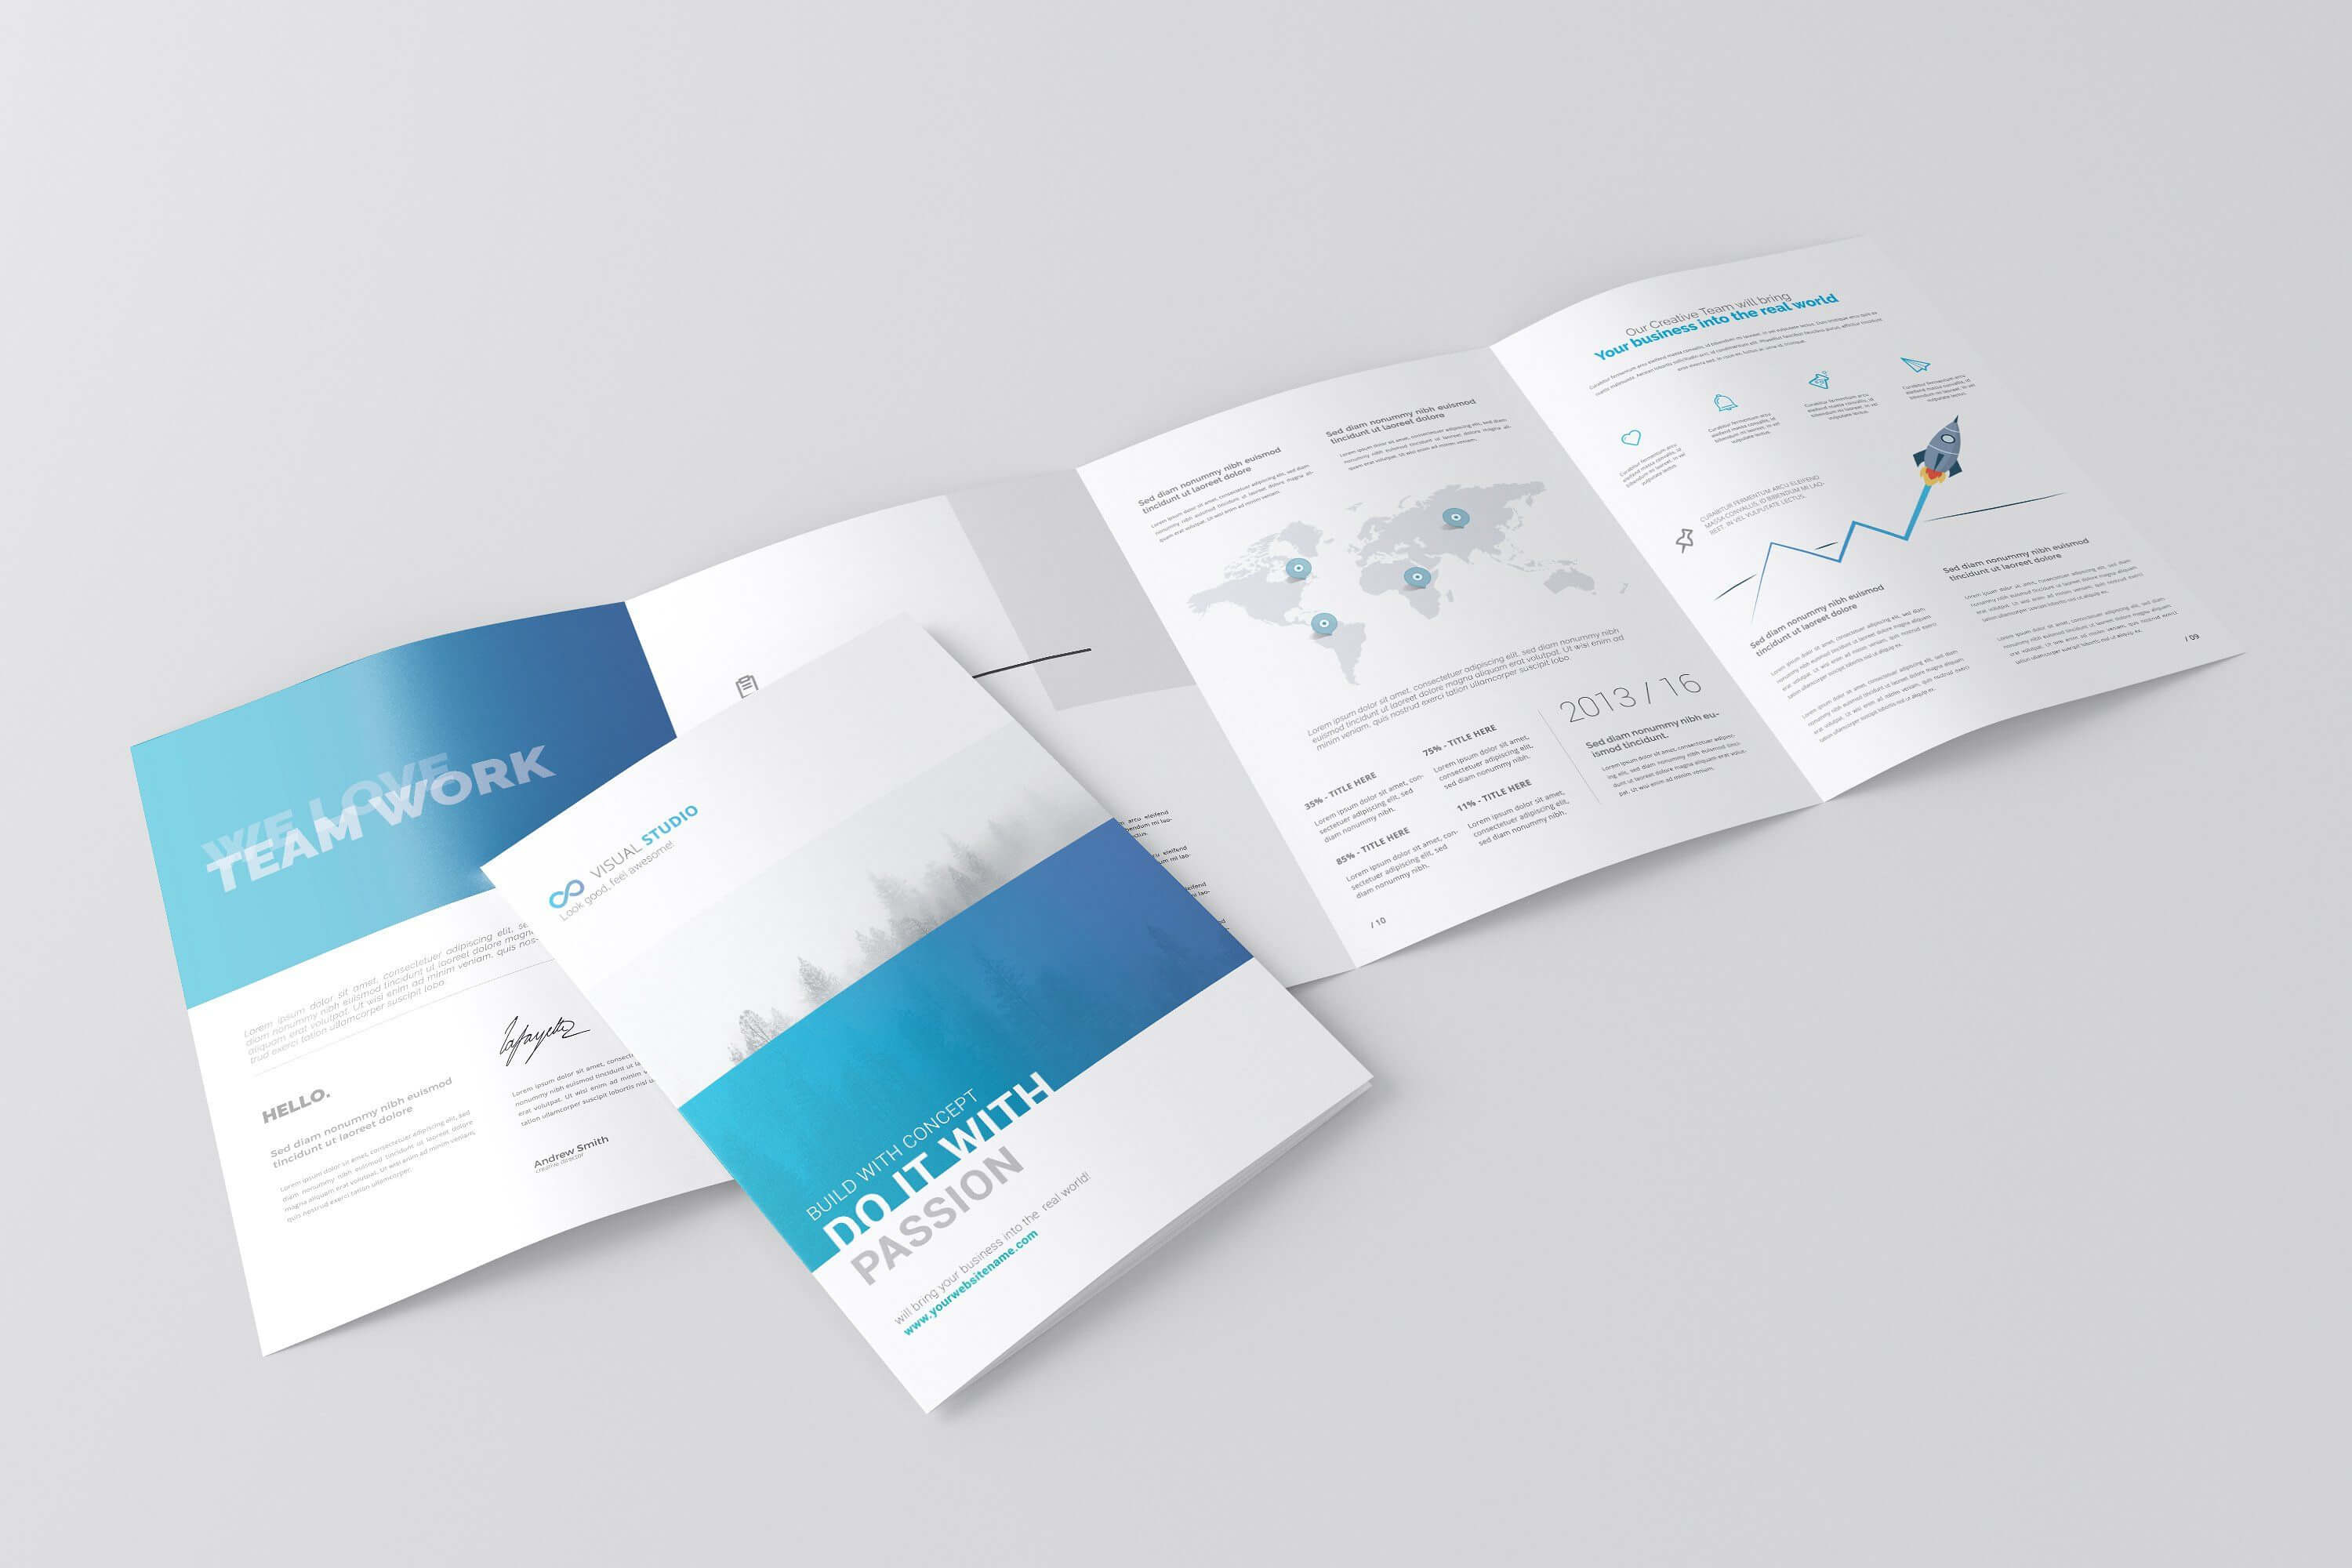 A4 4-Fold Brochure Mockuptoasin Studio On pertaining to Brochure 4 Fold Template